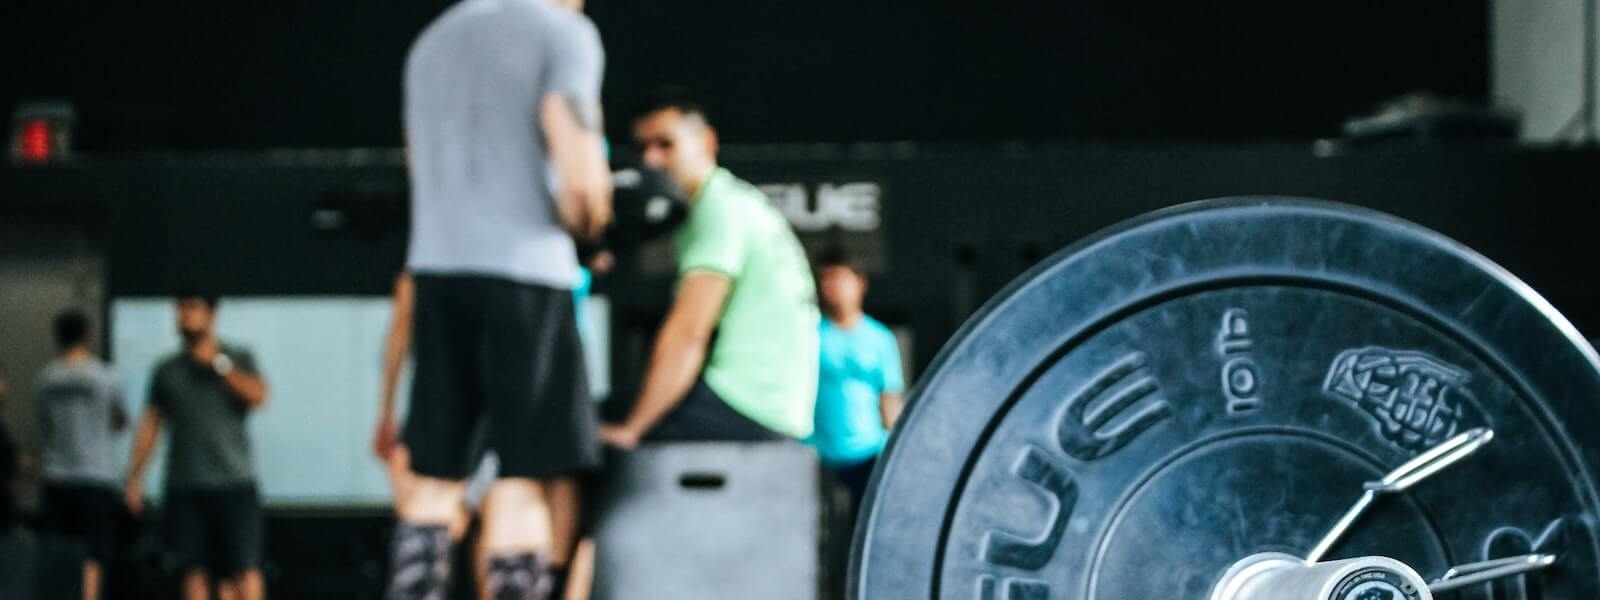 Gym Etiquette How to Not be a Gym Bro Article